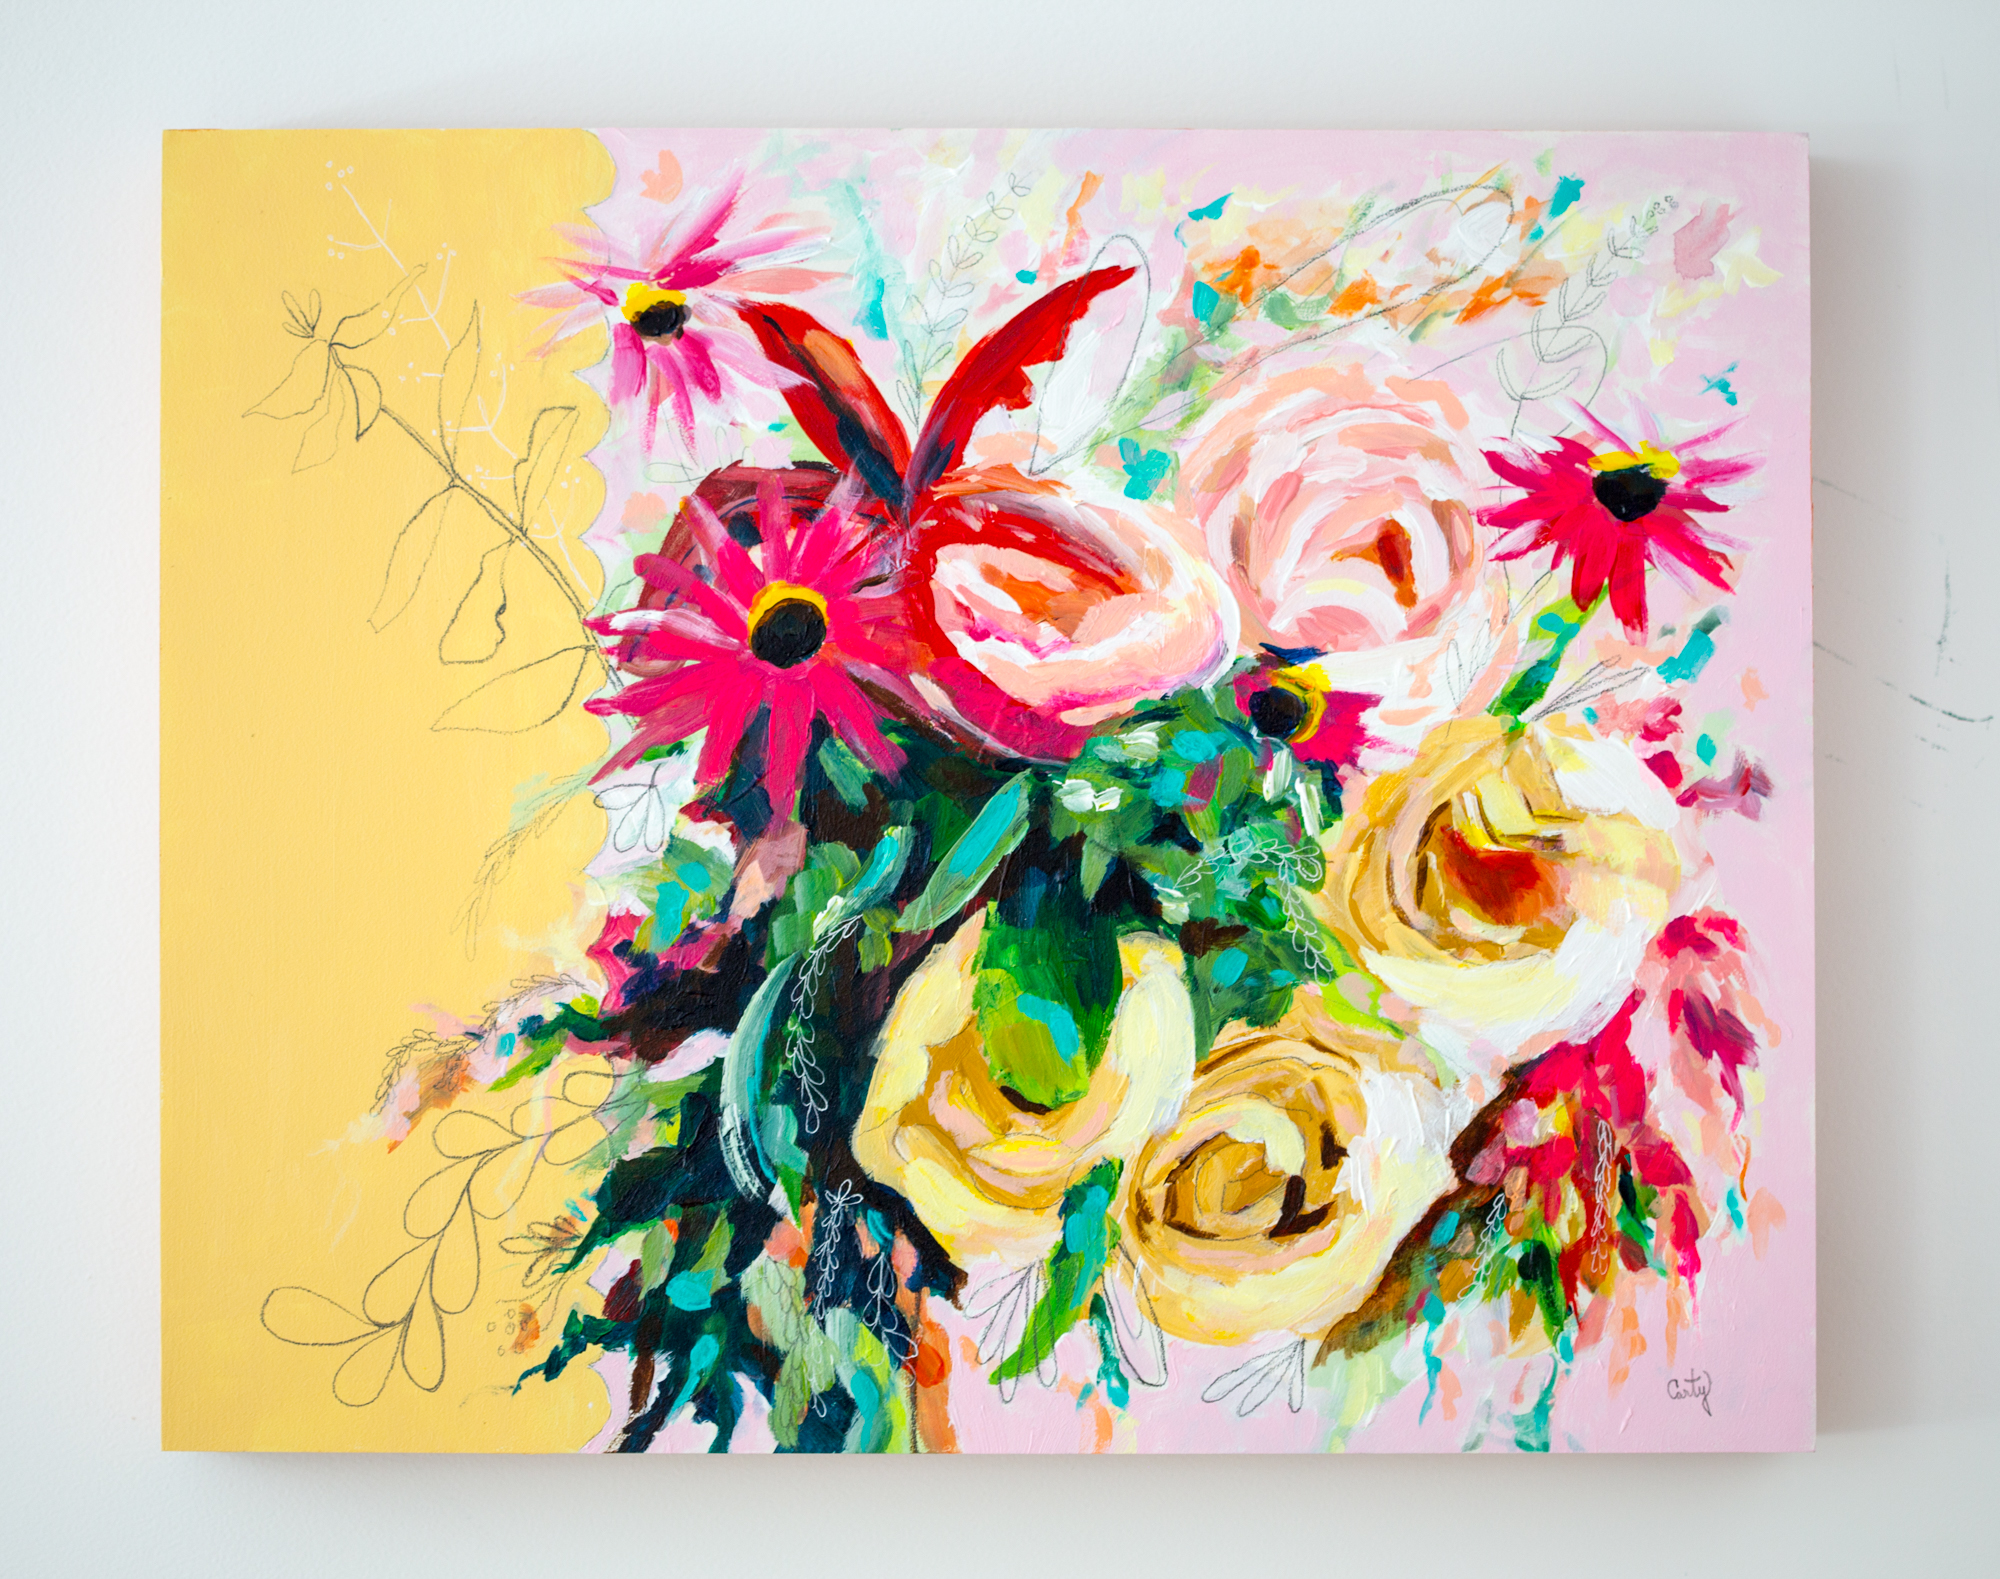 vintage inspired abstract floral painting by megan carty